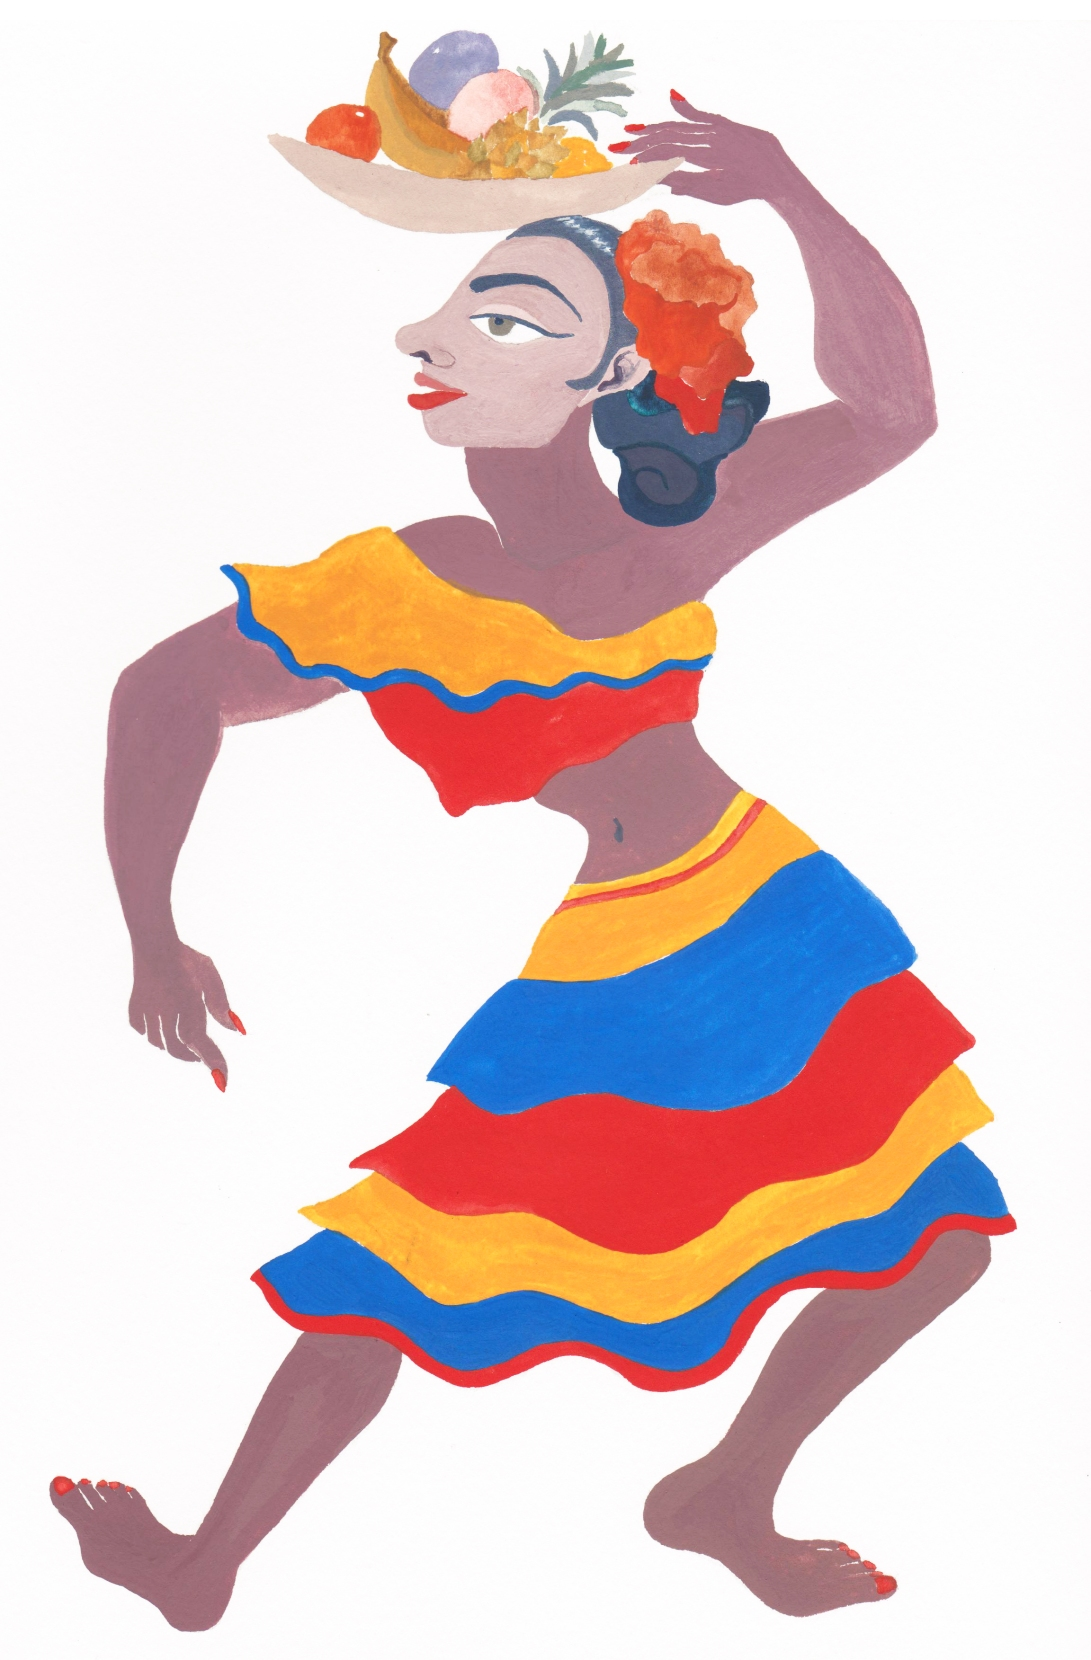 Cumbia dancer